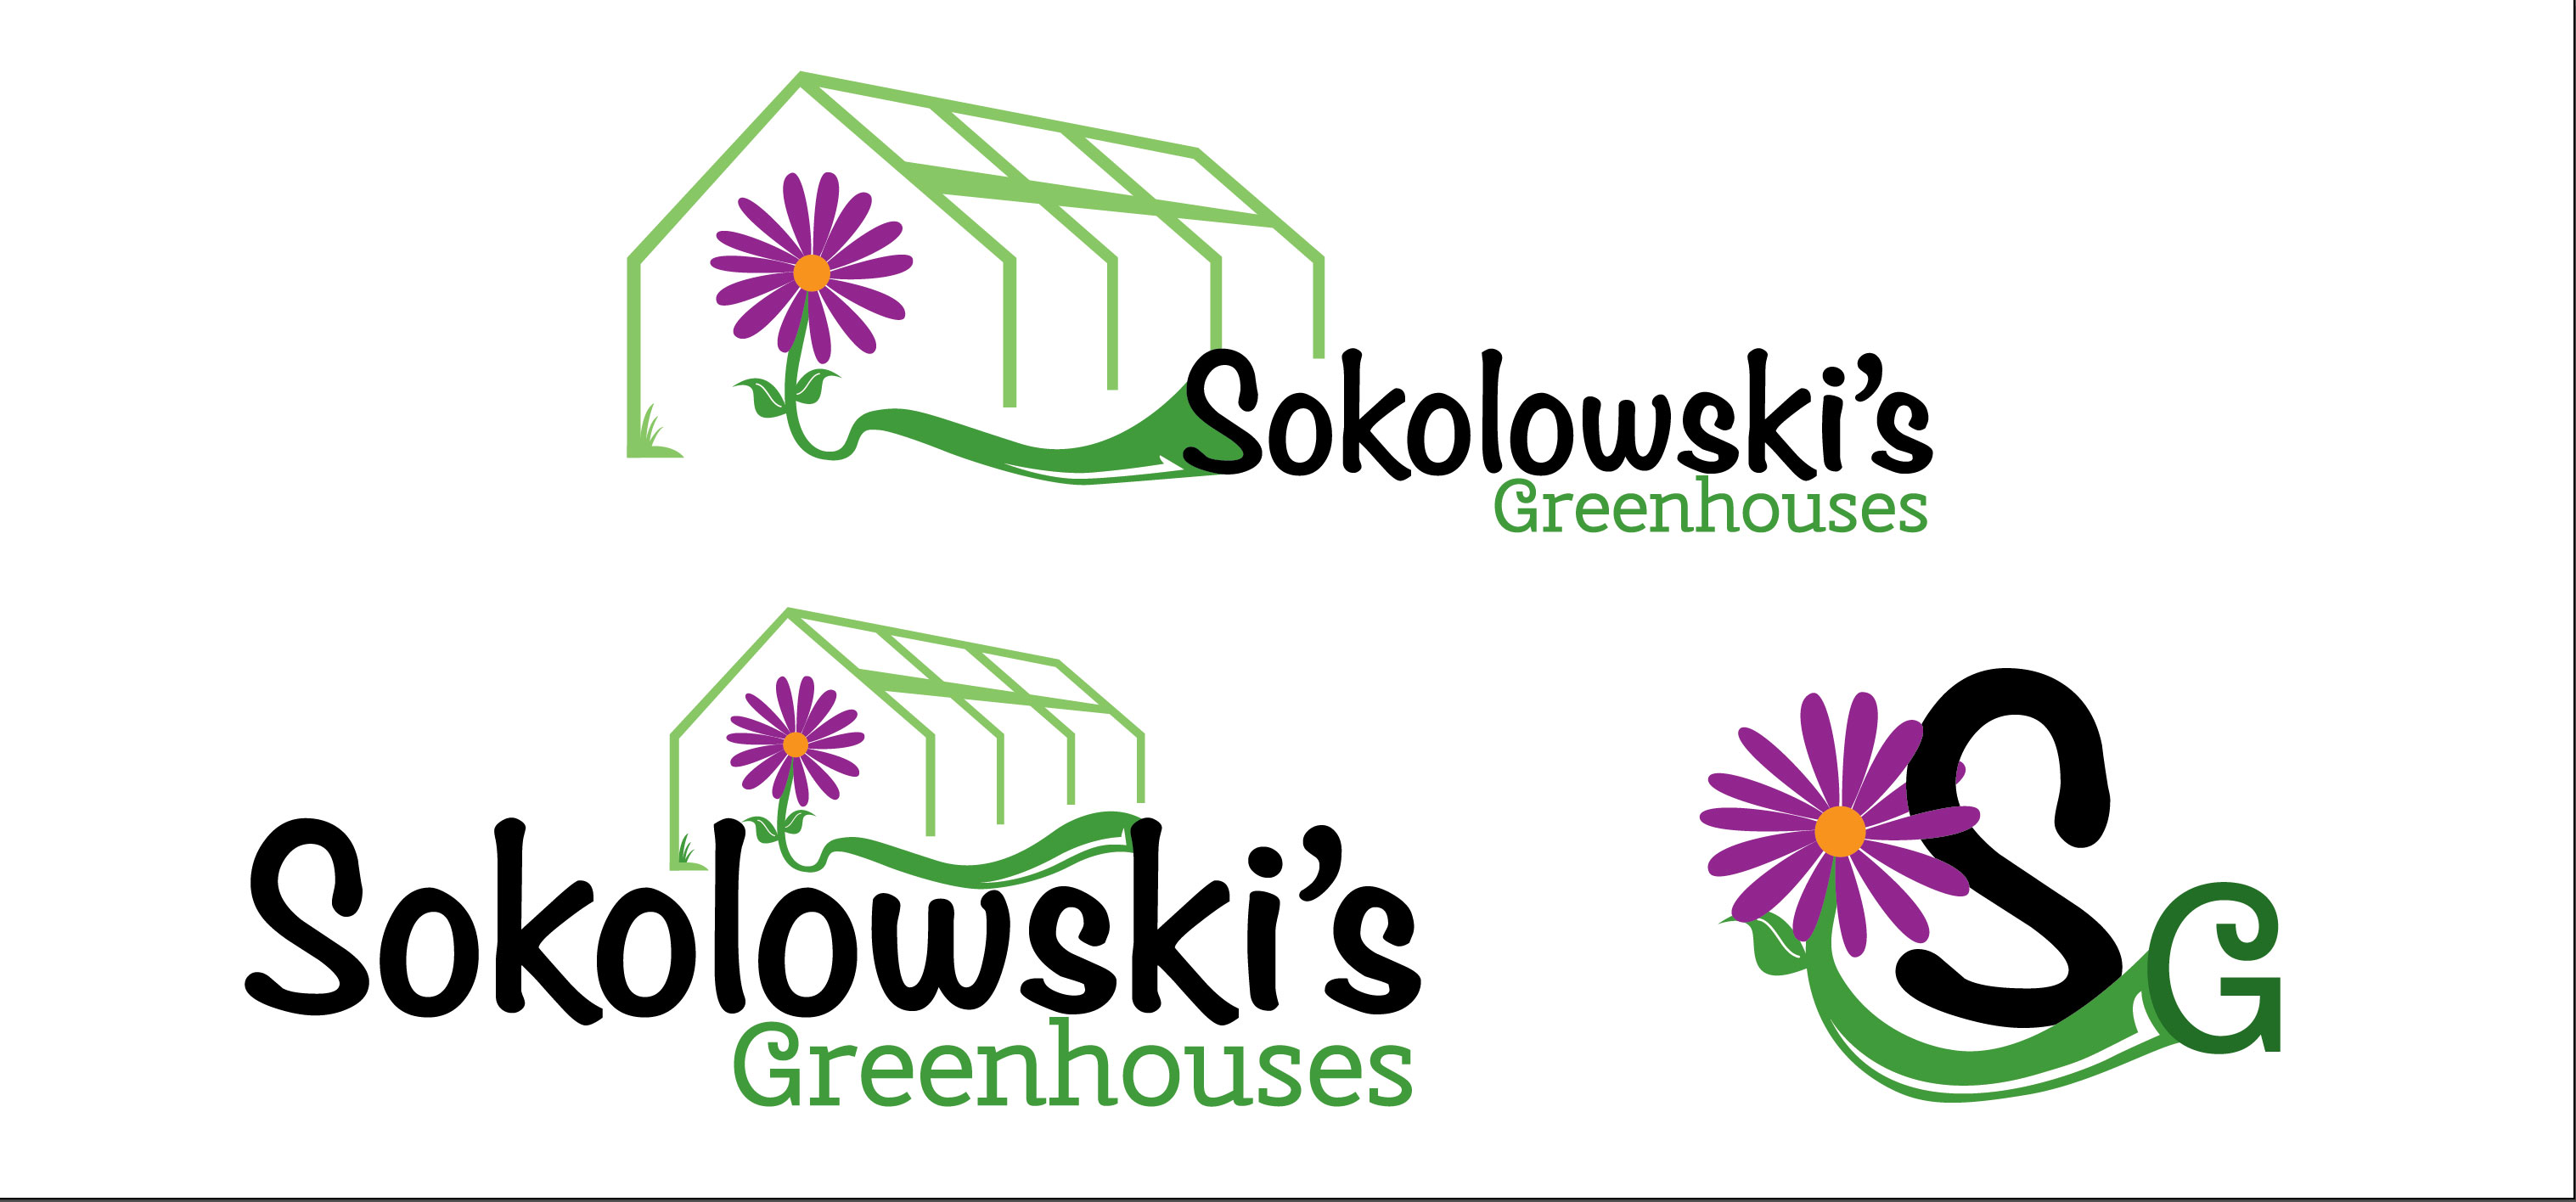 Image of logo design created for Sokolowski's Greenhouses in Clifton Park, New York.